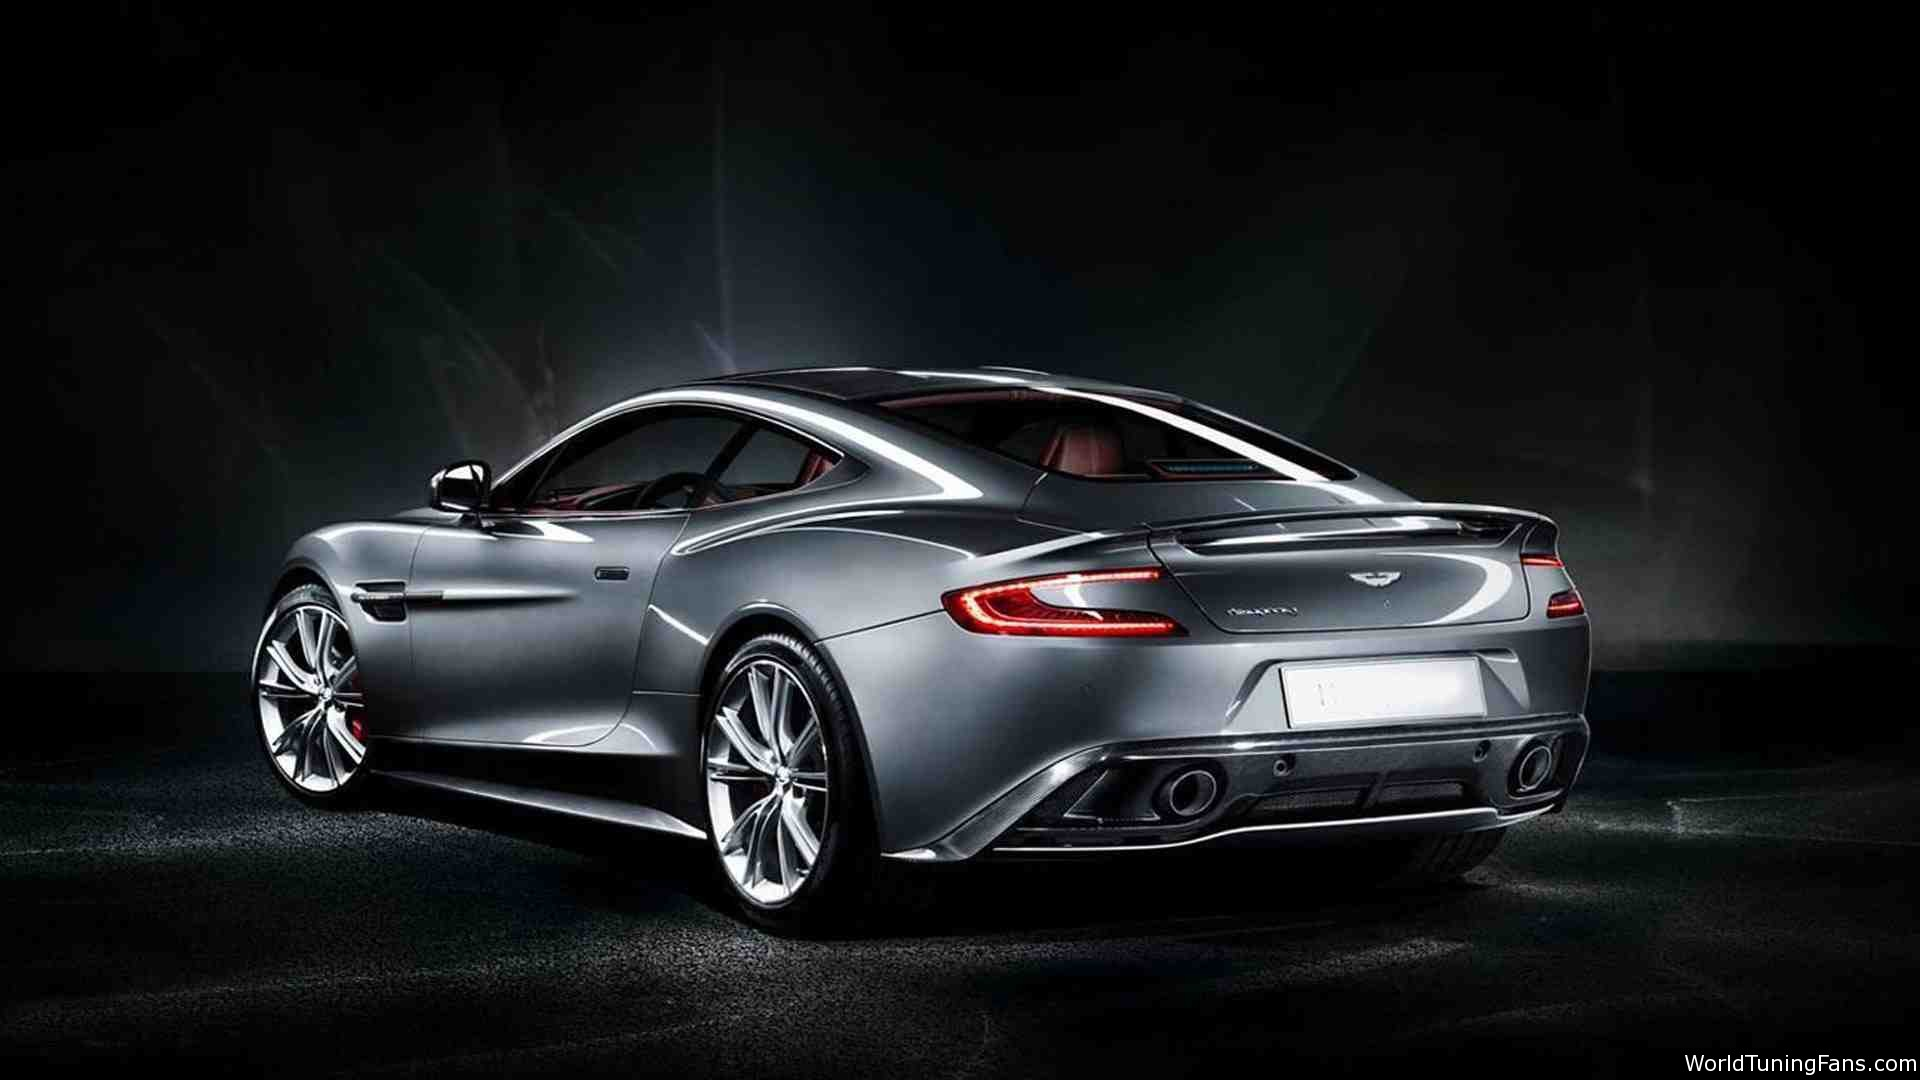 vanquish - Automobile Wallpapers in| HD | Iphone | Android| Desktop 6